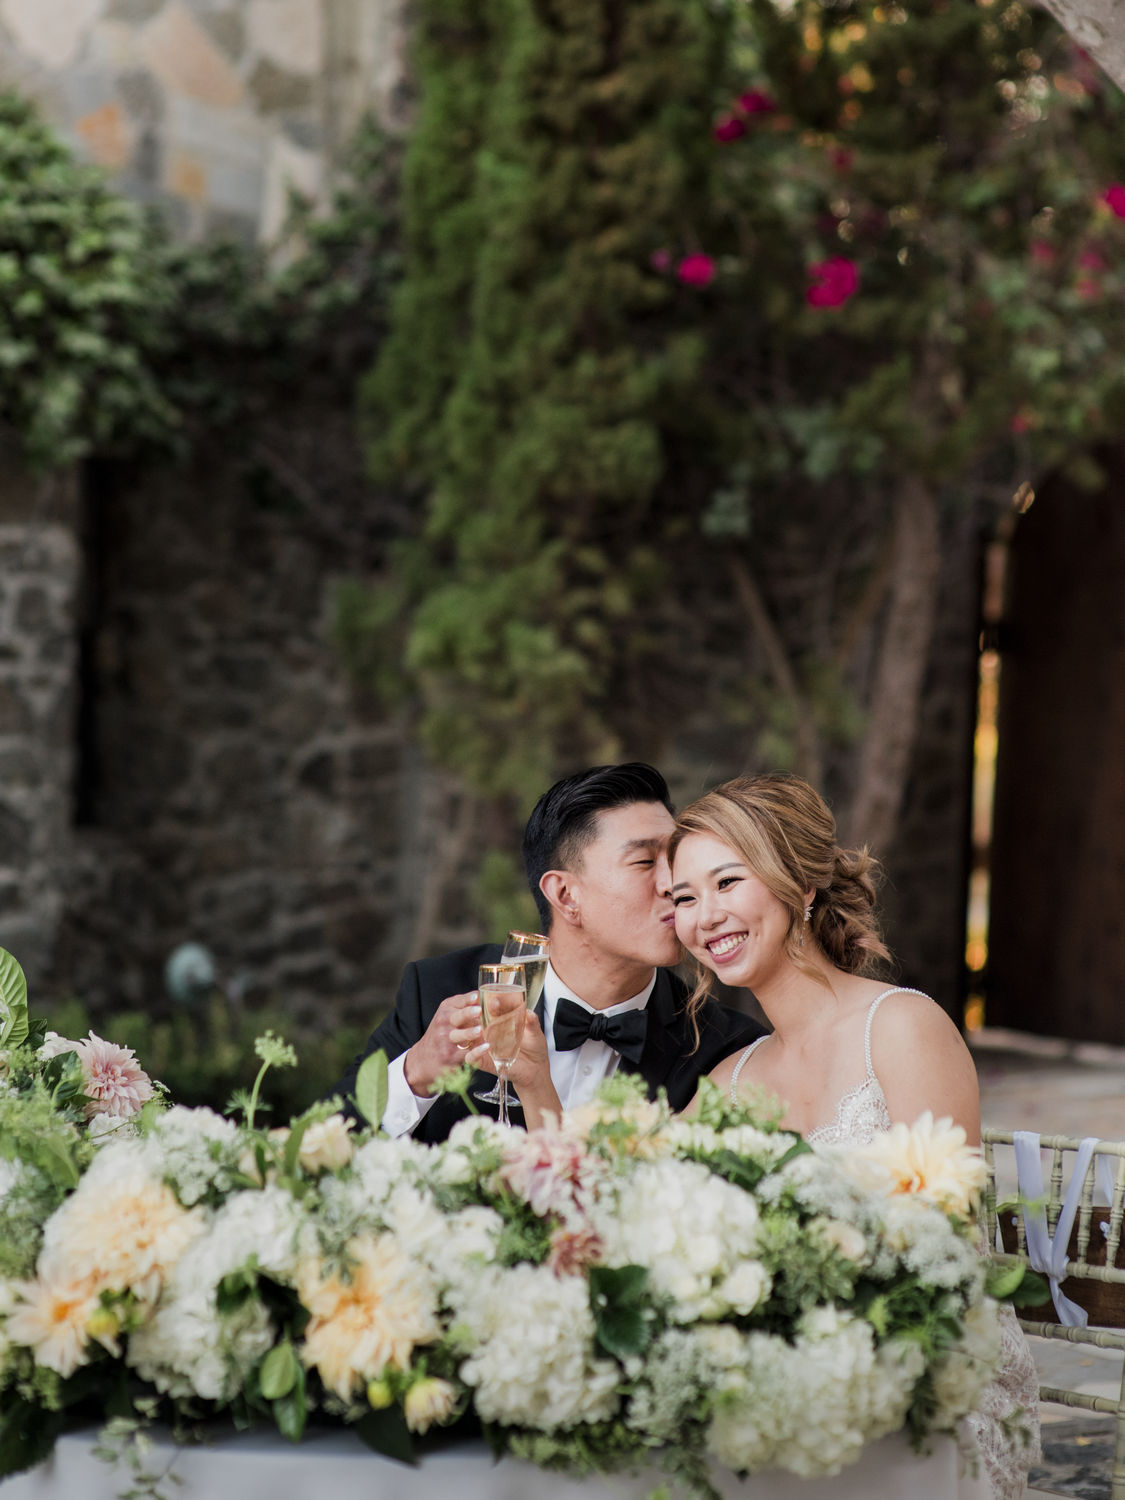 wedding-stone-manor-estates-malibu-angela-samuel-201.jpg